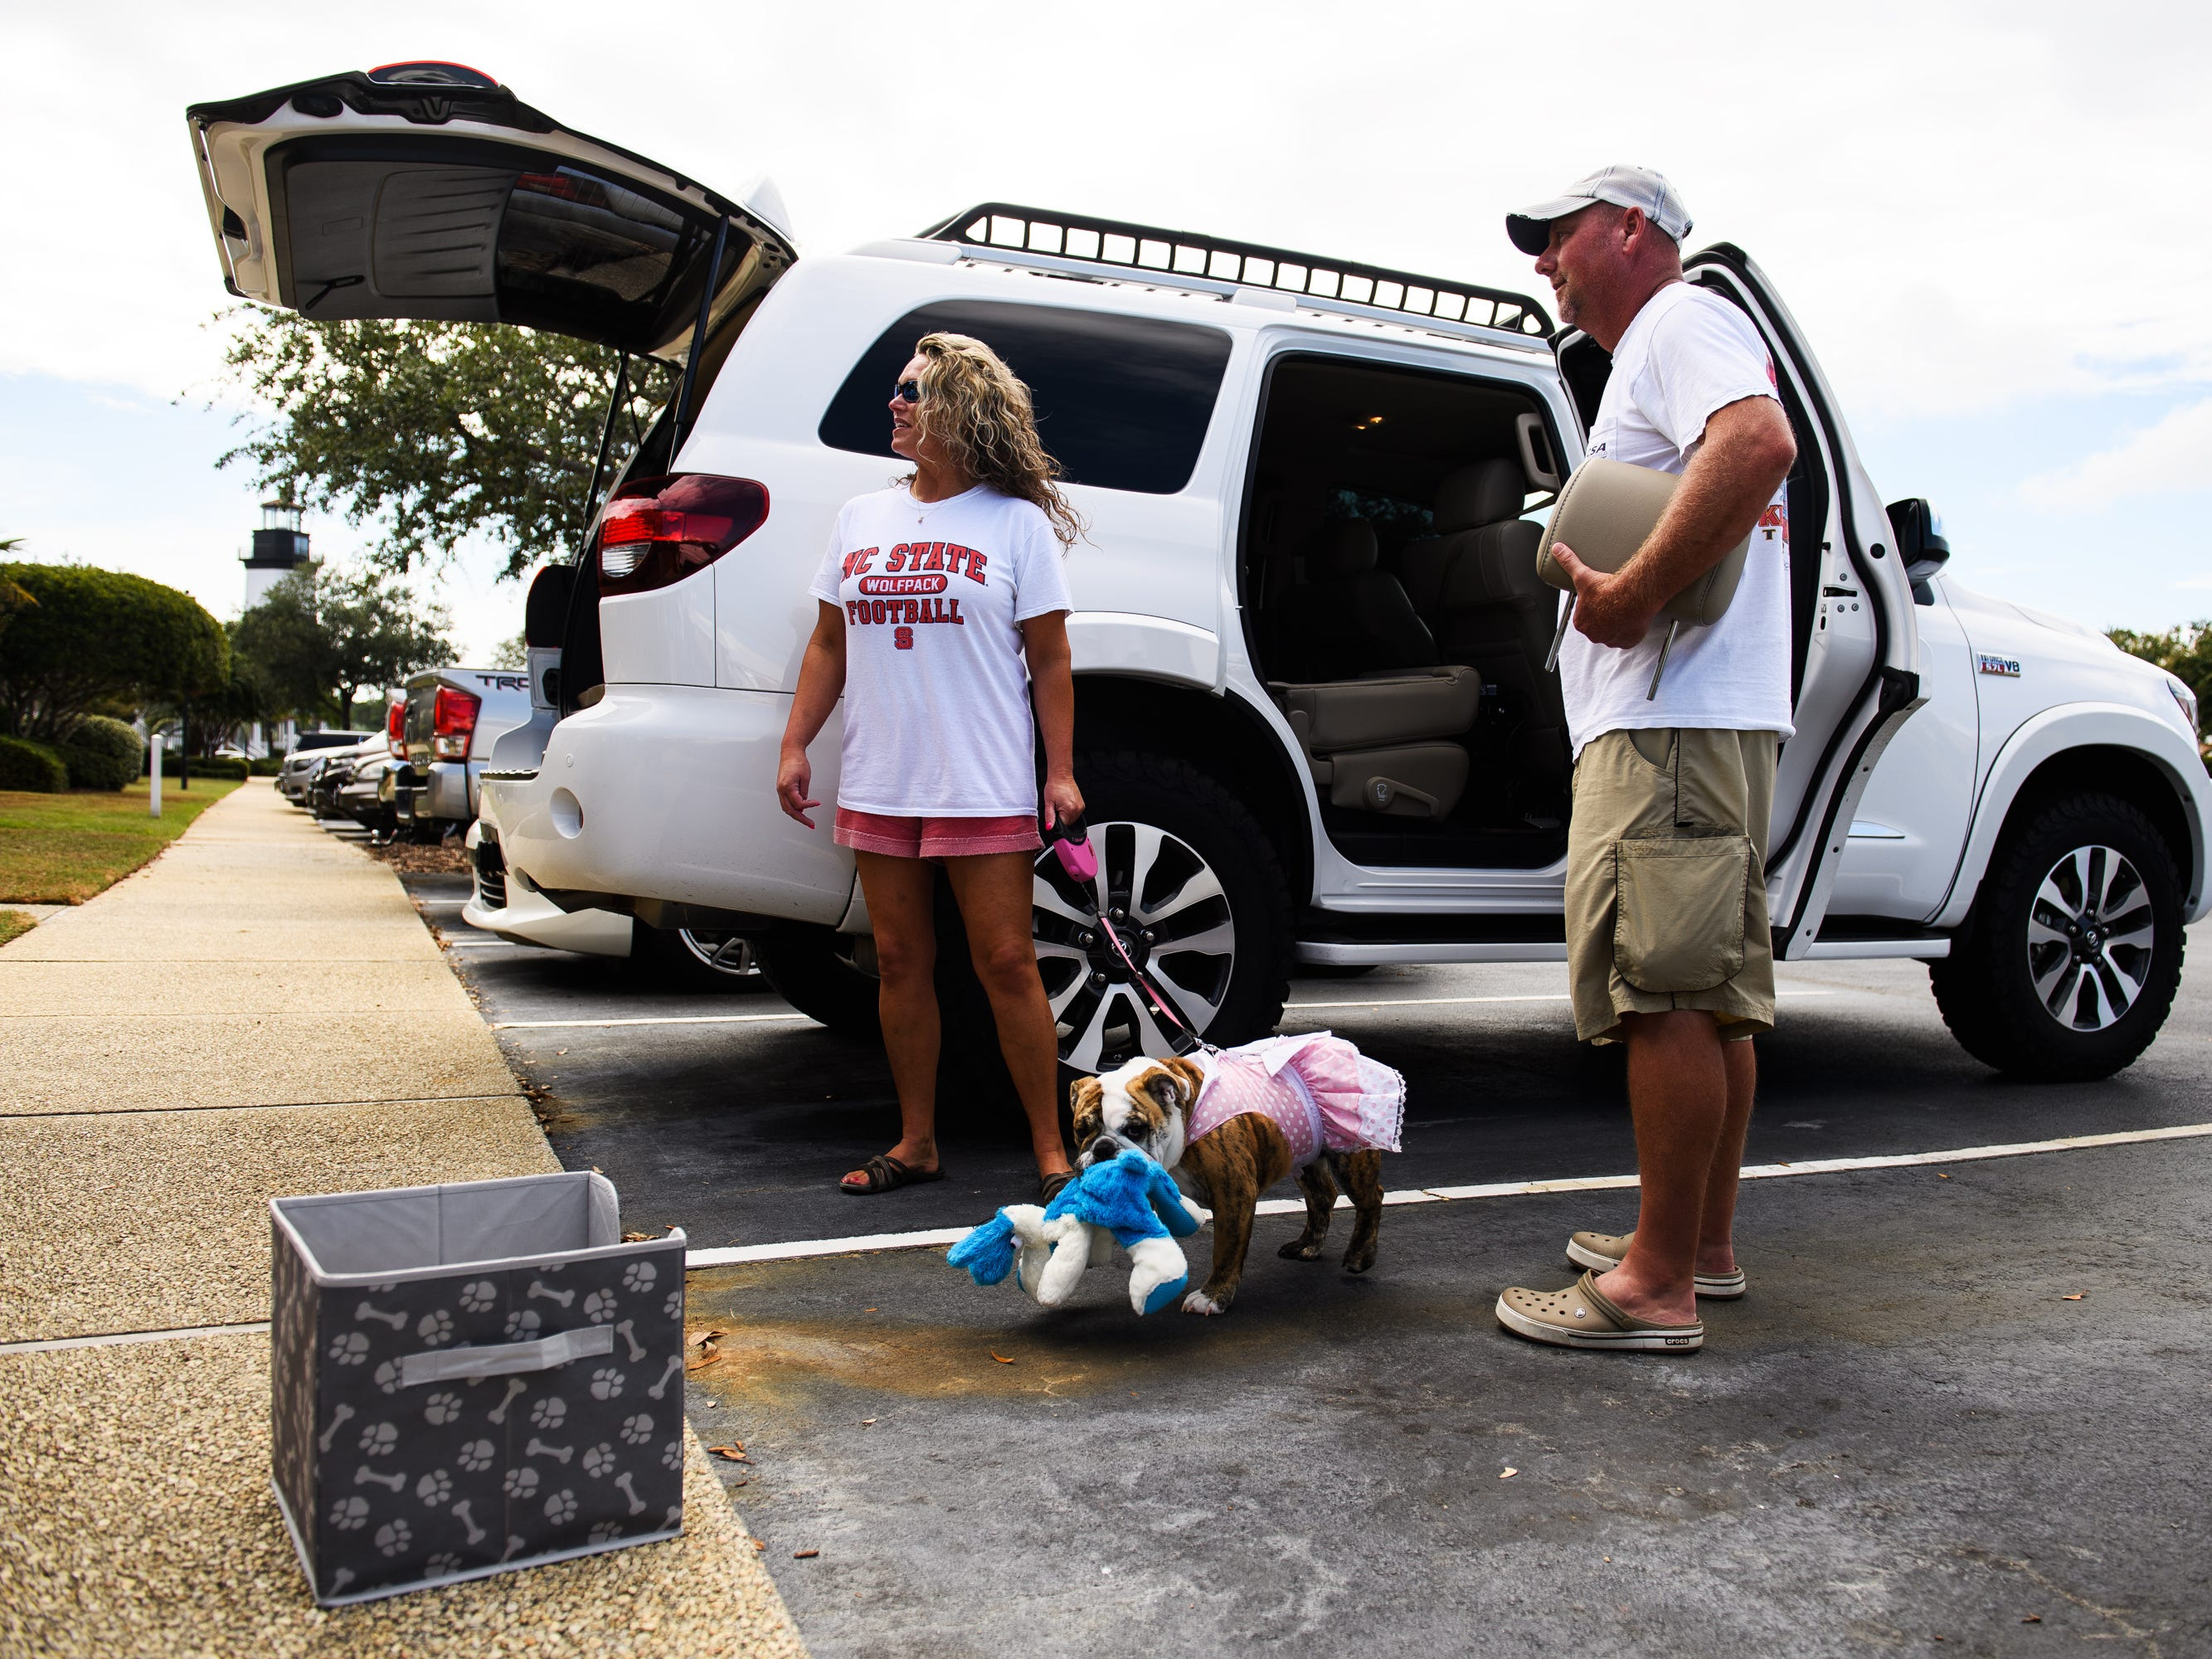 Billy and Stacy Prince and their dog Dixie begin packing up their vehicles to evacuate their North Myrtle Beach home on Wednesday, Sept. 12, 2018. Billy Prince, who grew up in the area, said he stayed for past hurricanes but didn't want to take the risk with Hurricane Florence.